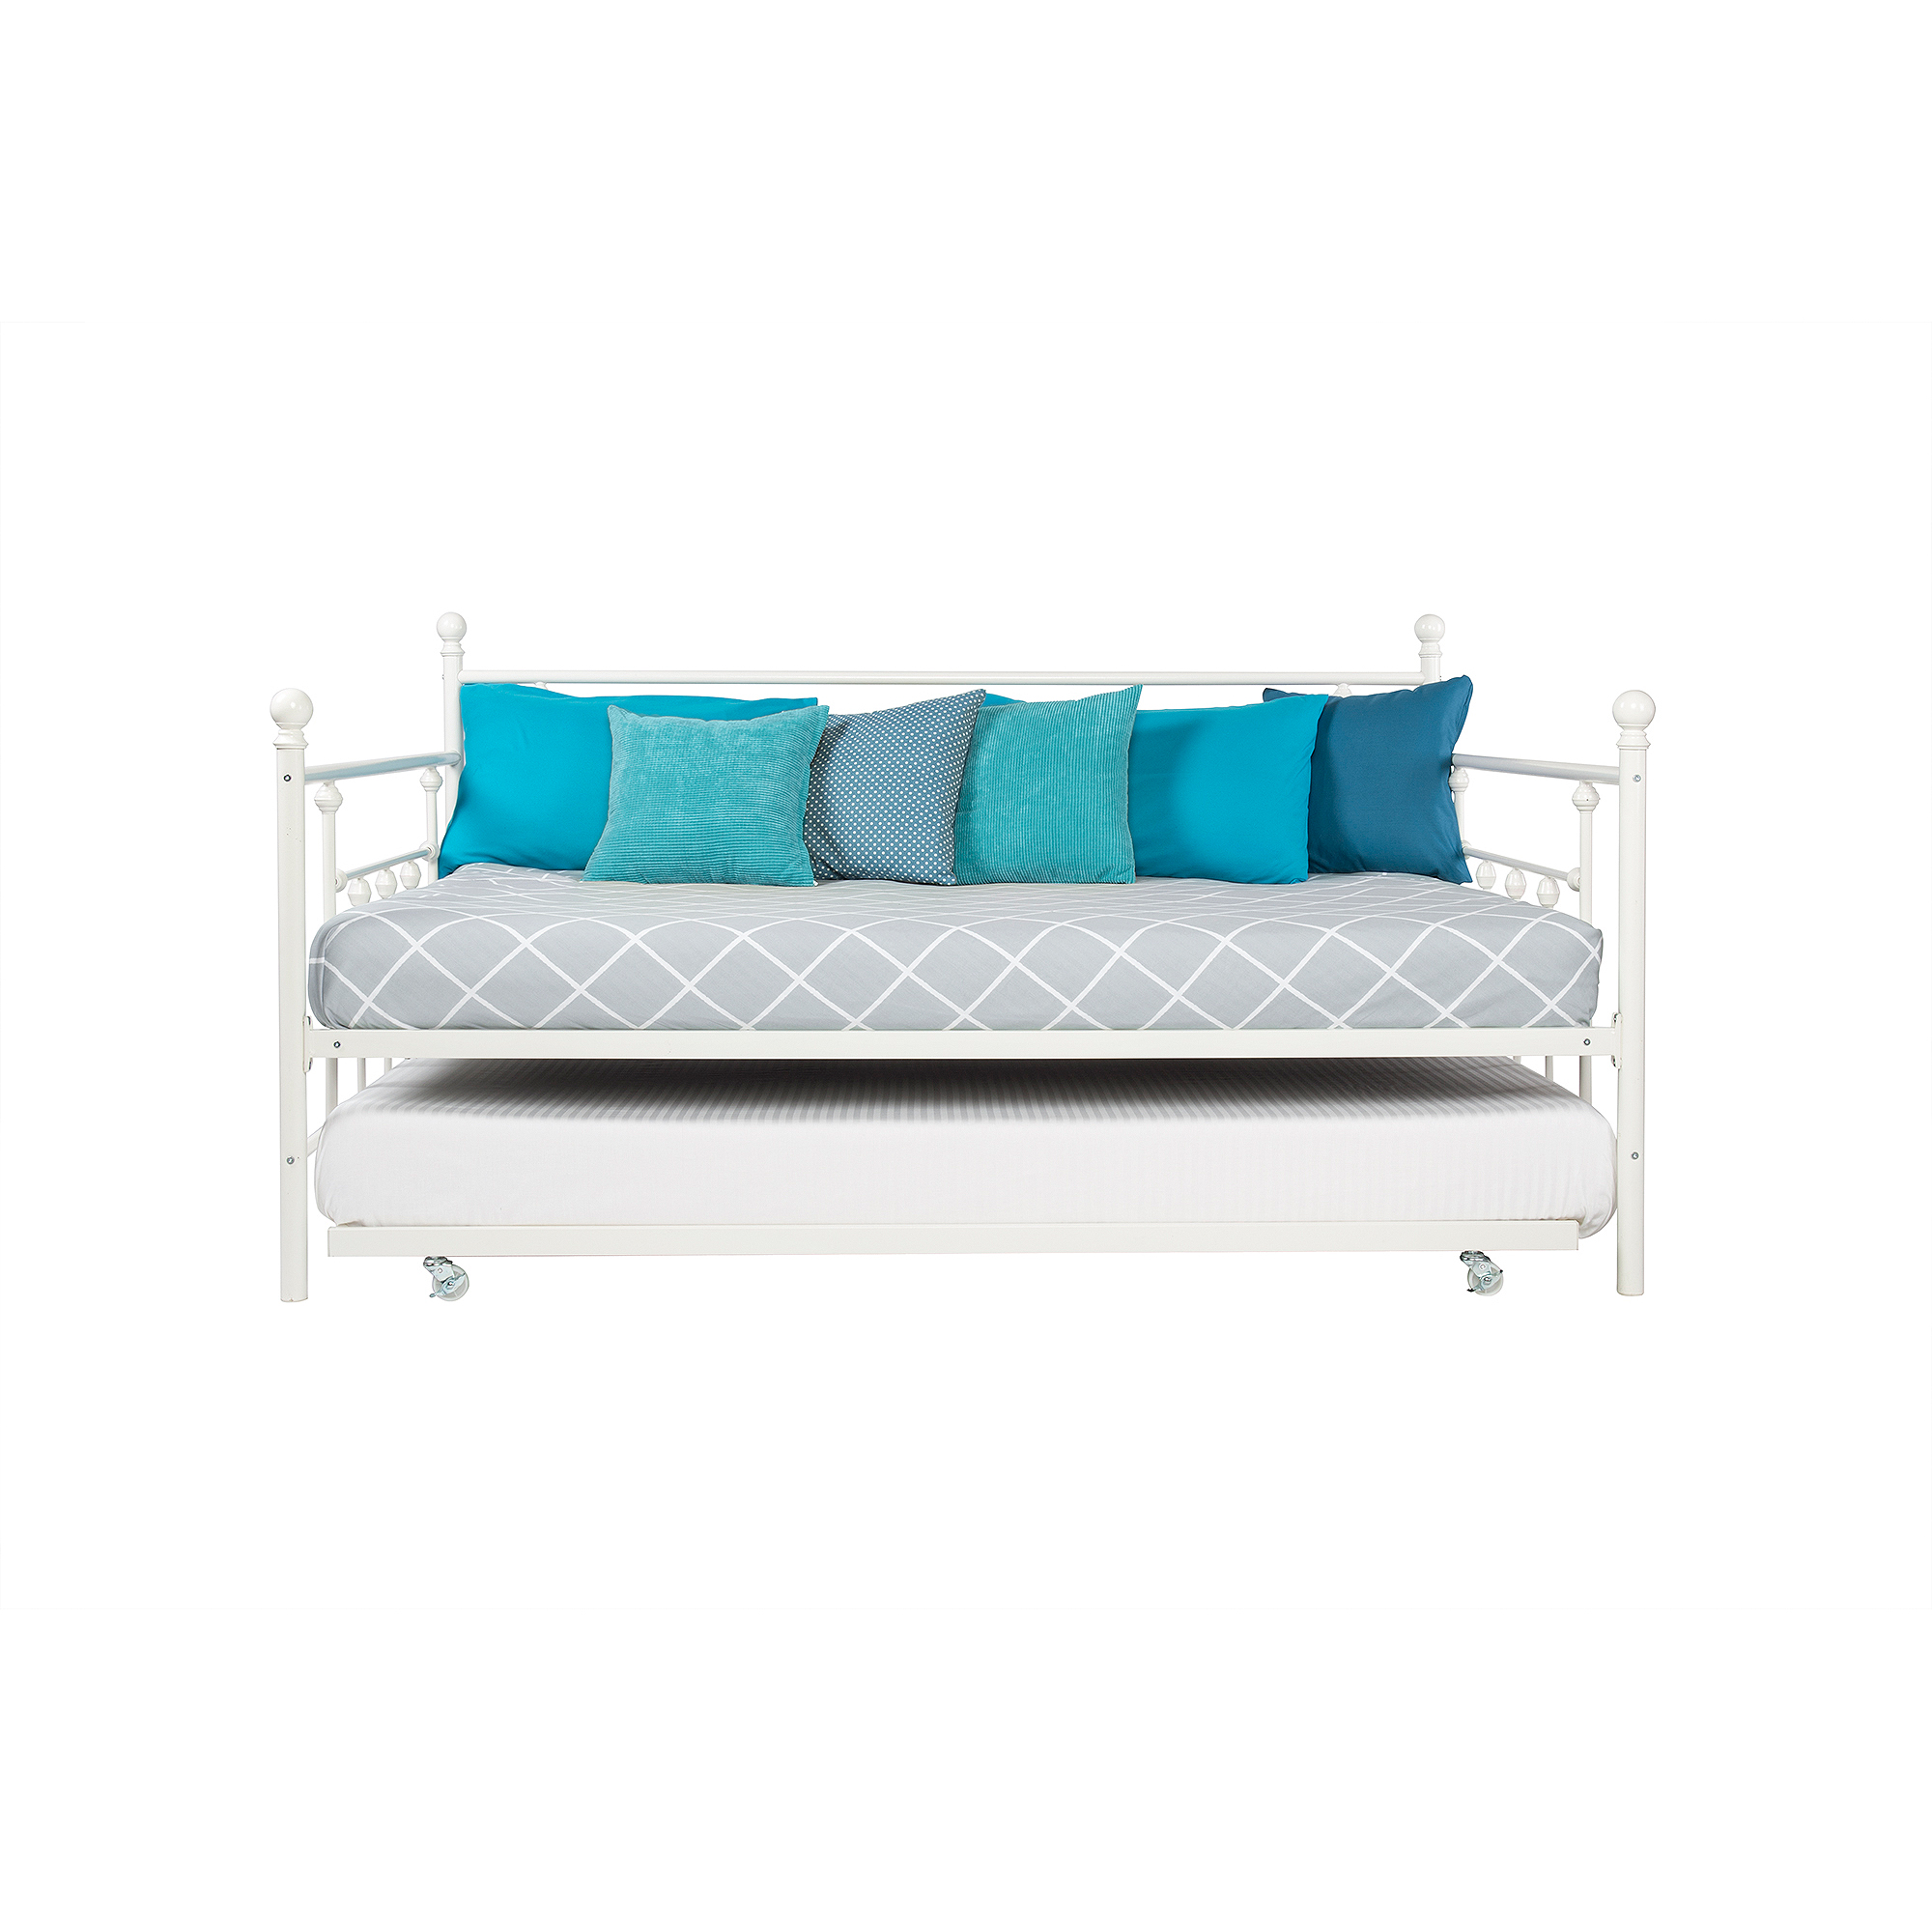 Full Size Daybed with Trundle | Daybed with Trundle Full Size | Small Daybed